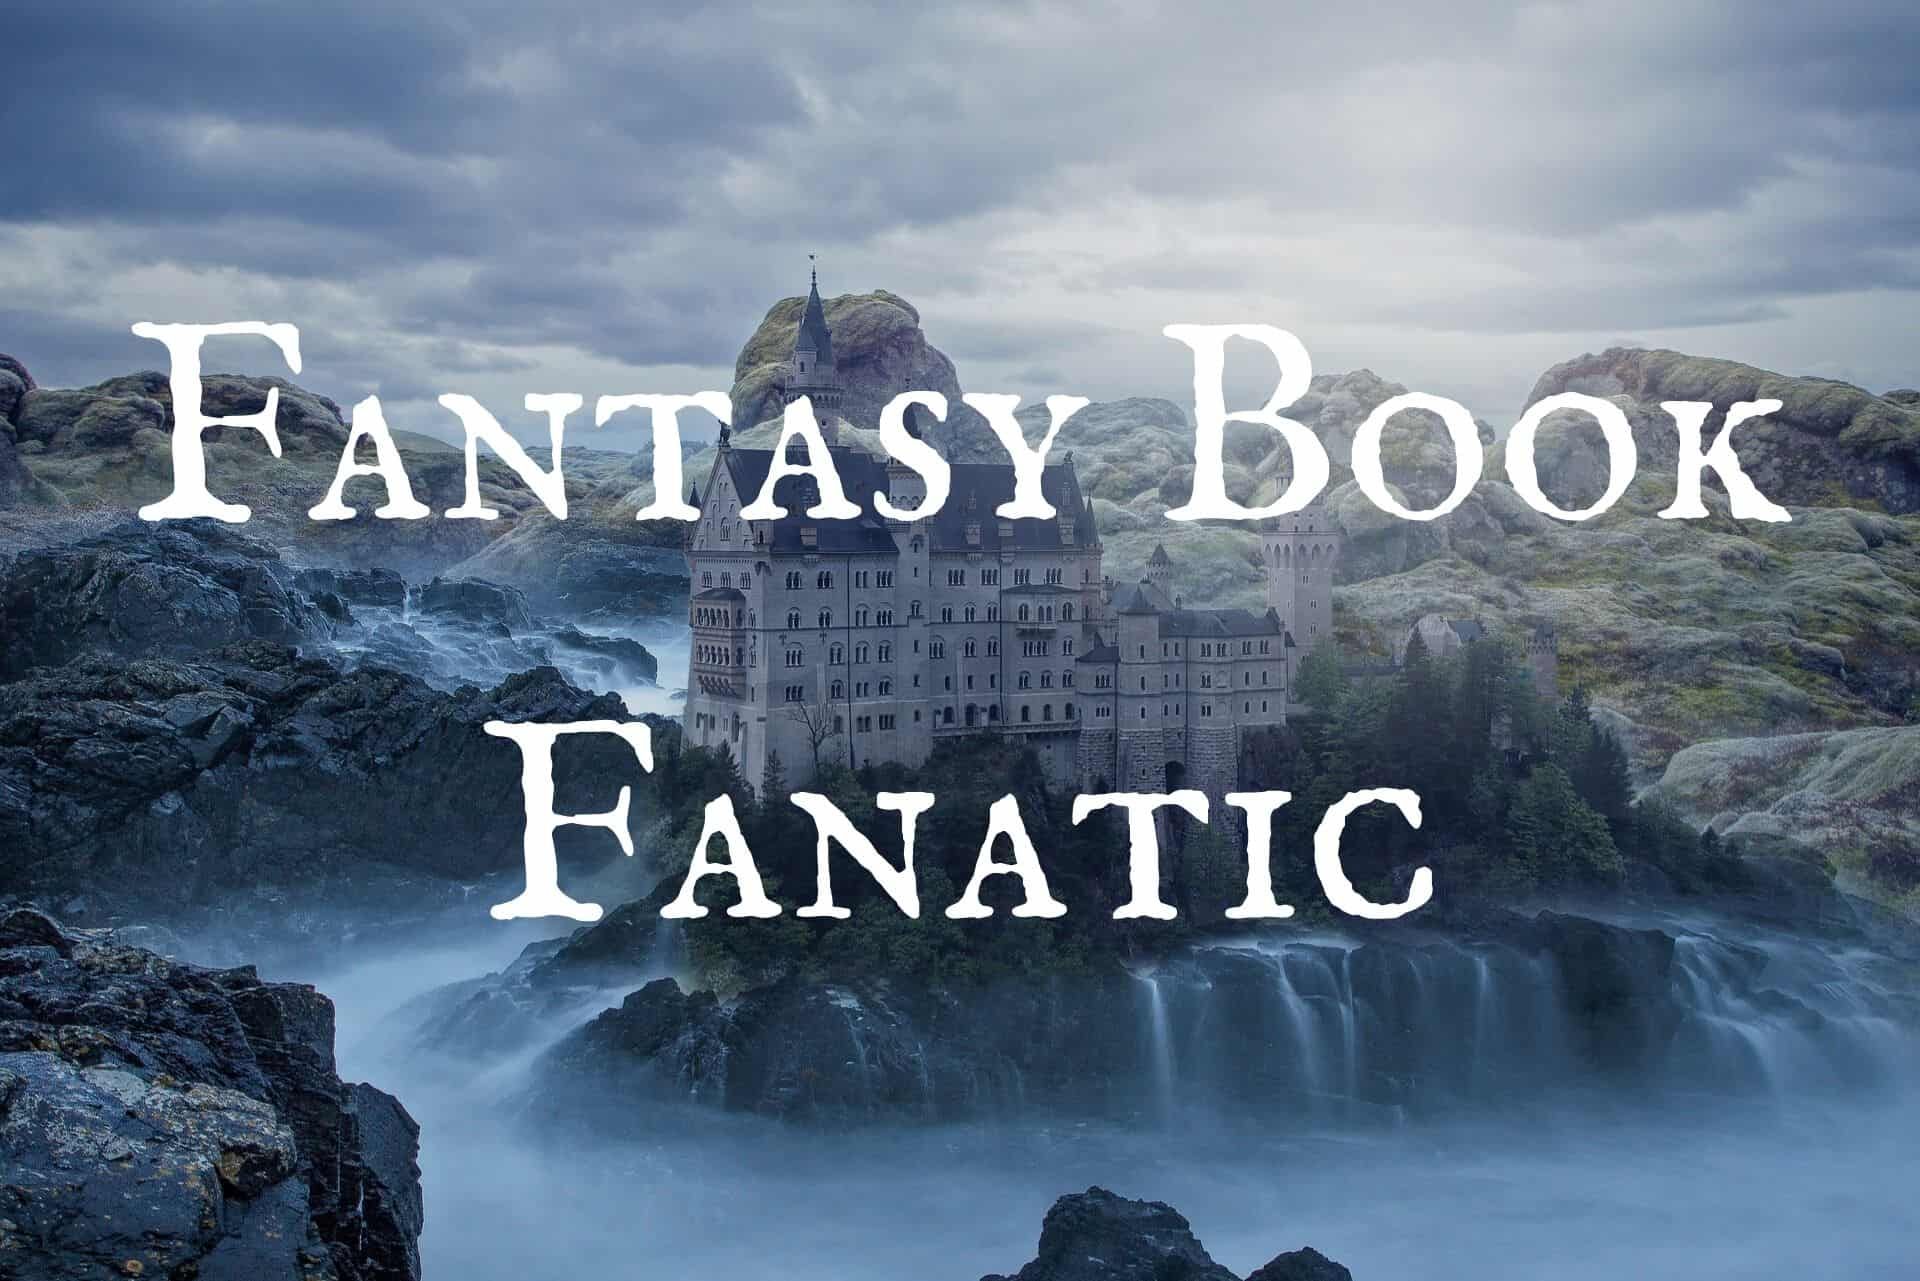 Join Fantasy Book Fanatic on Youtube